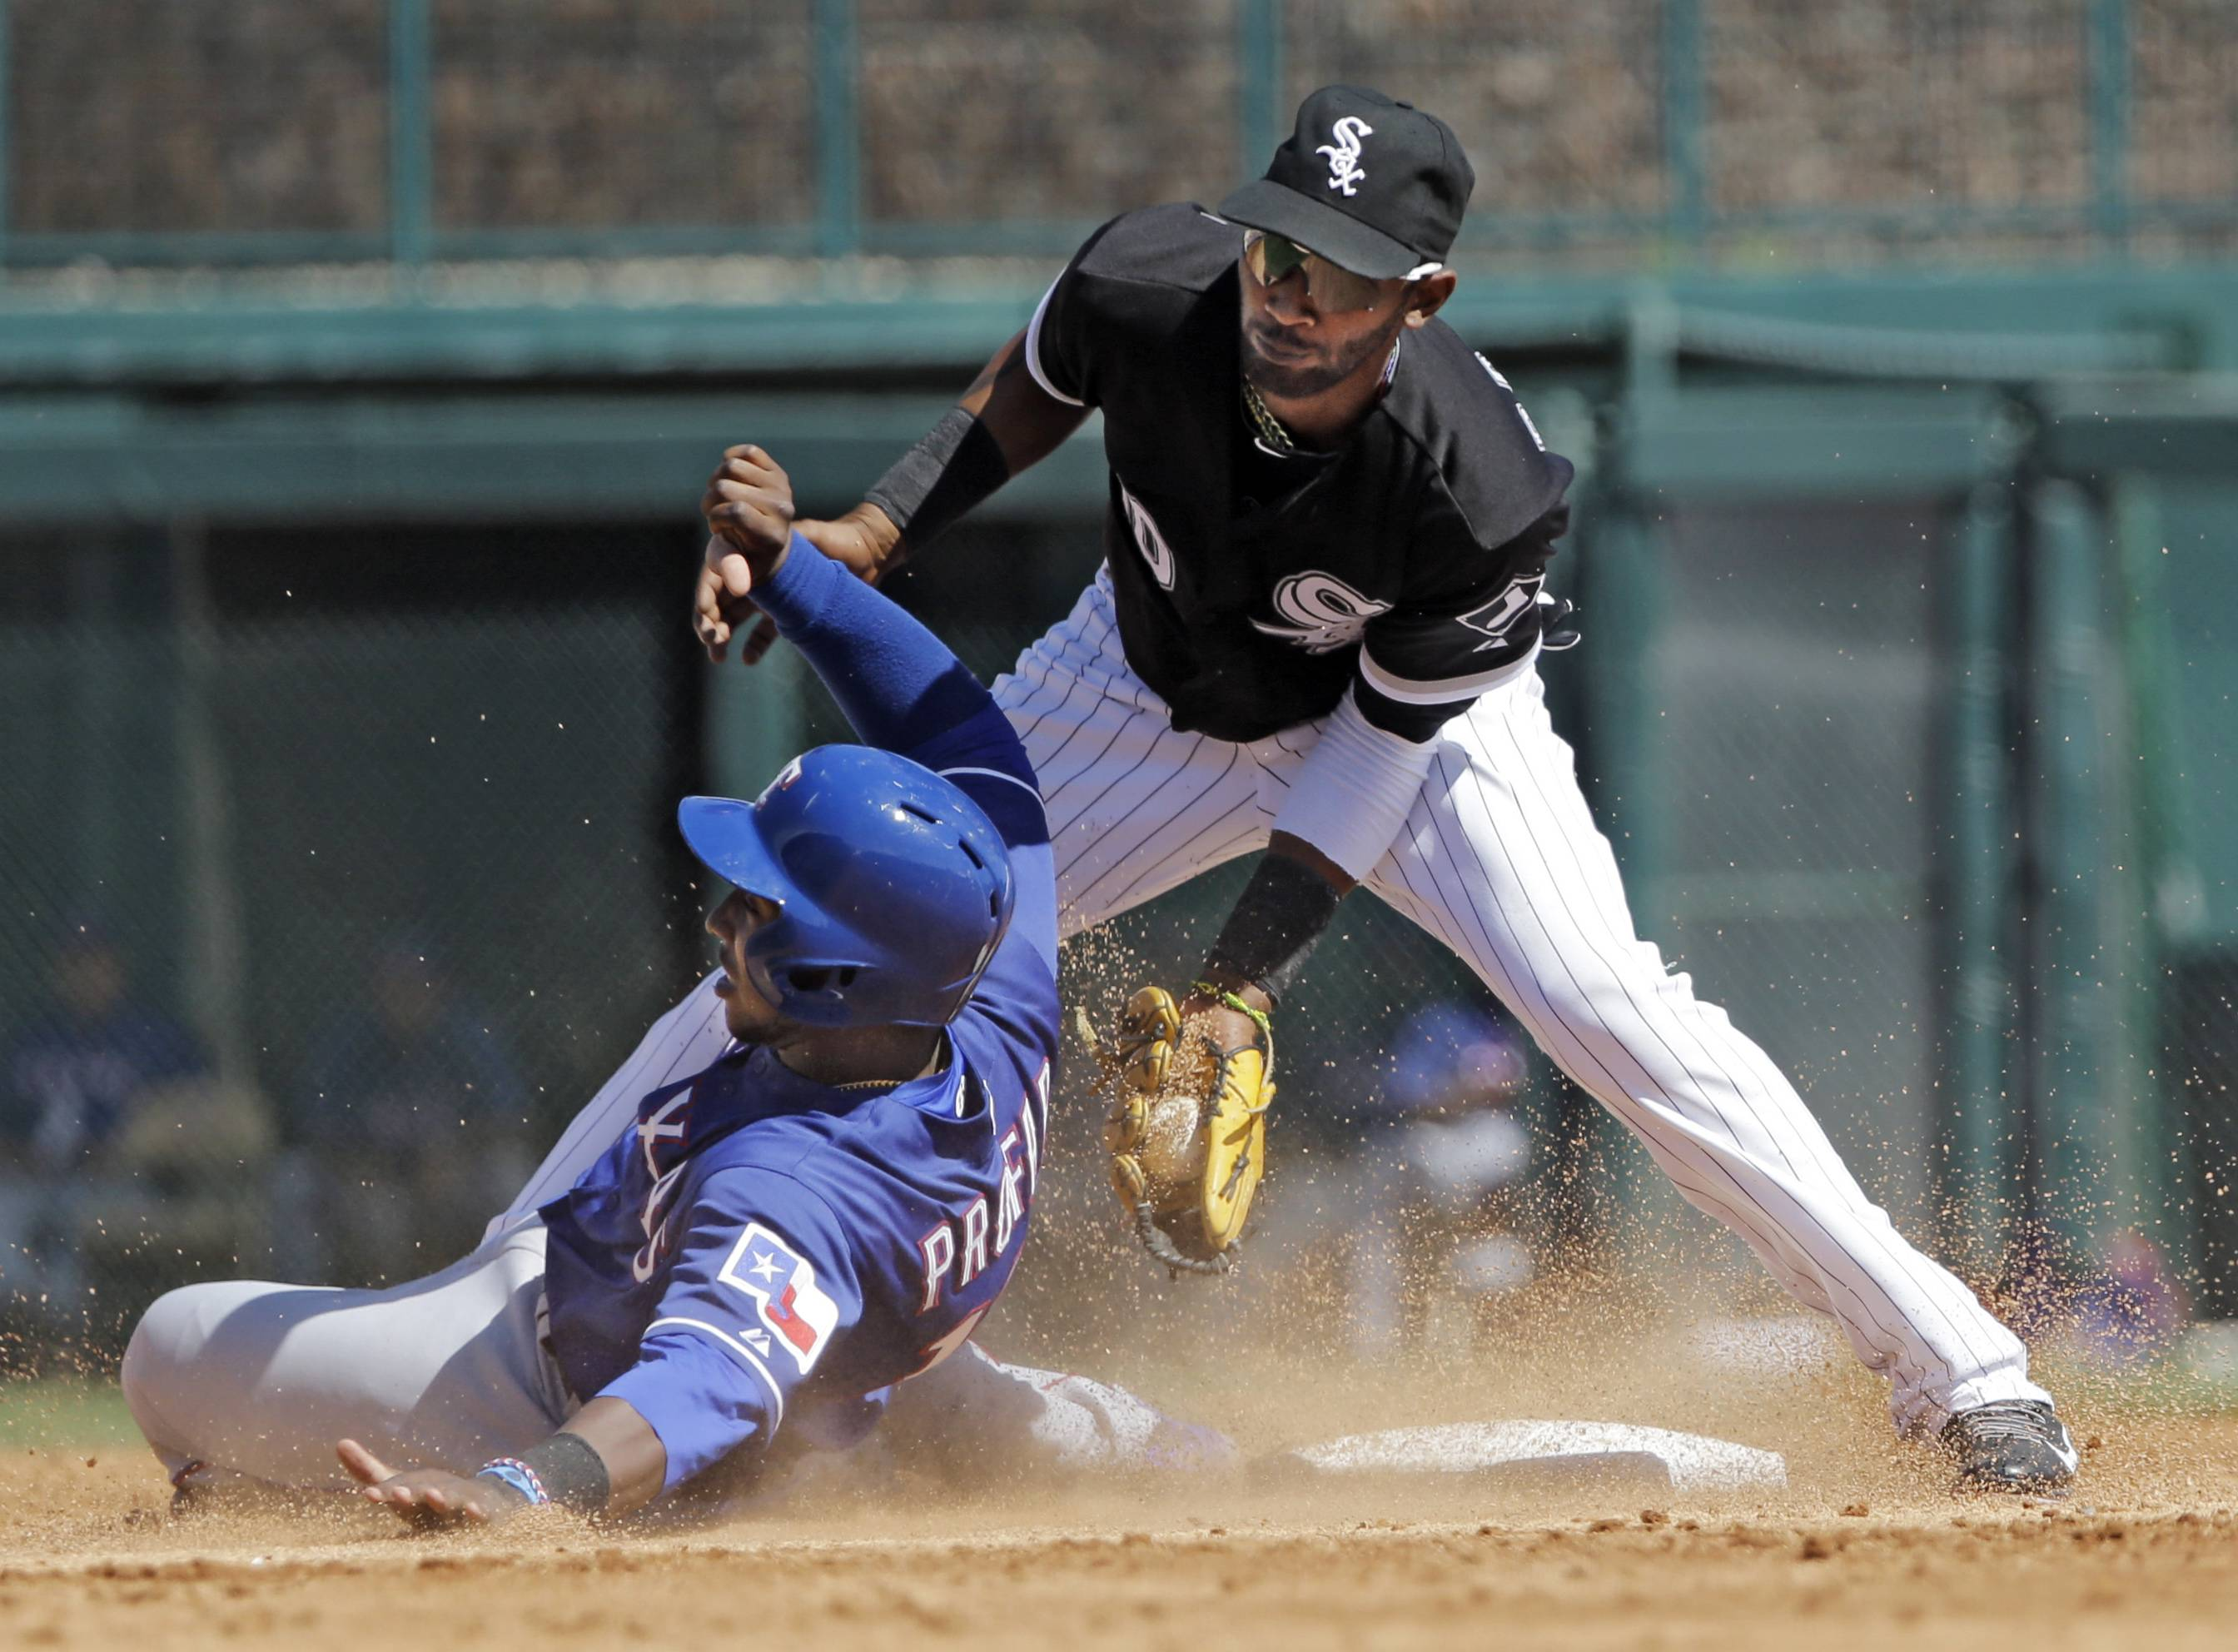 New White Sox lineup taking shape